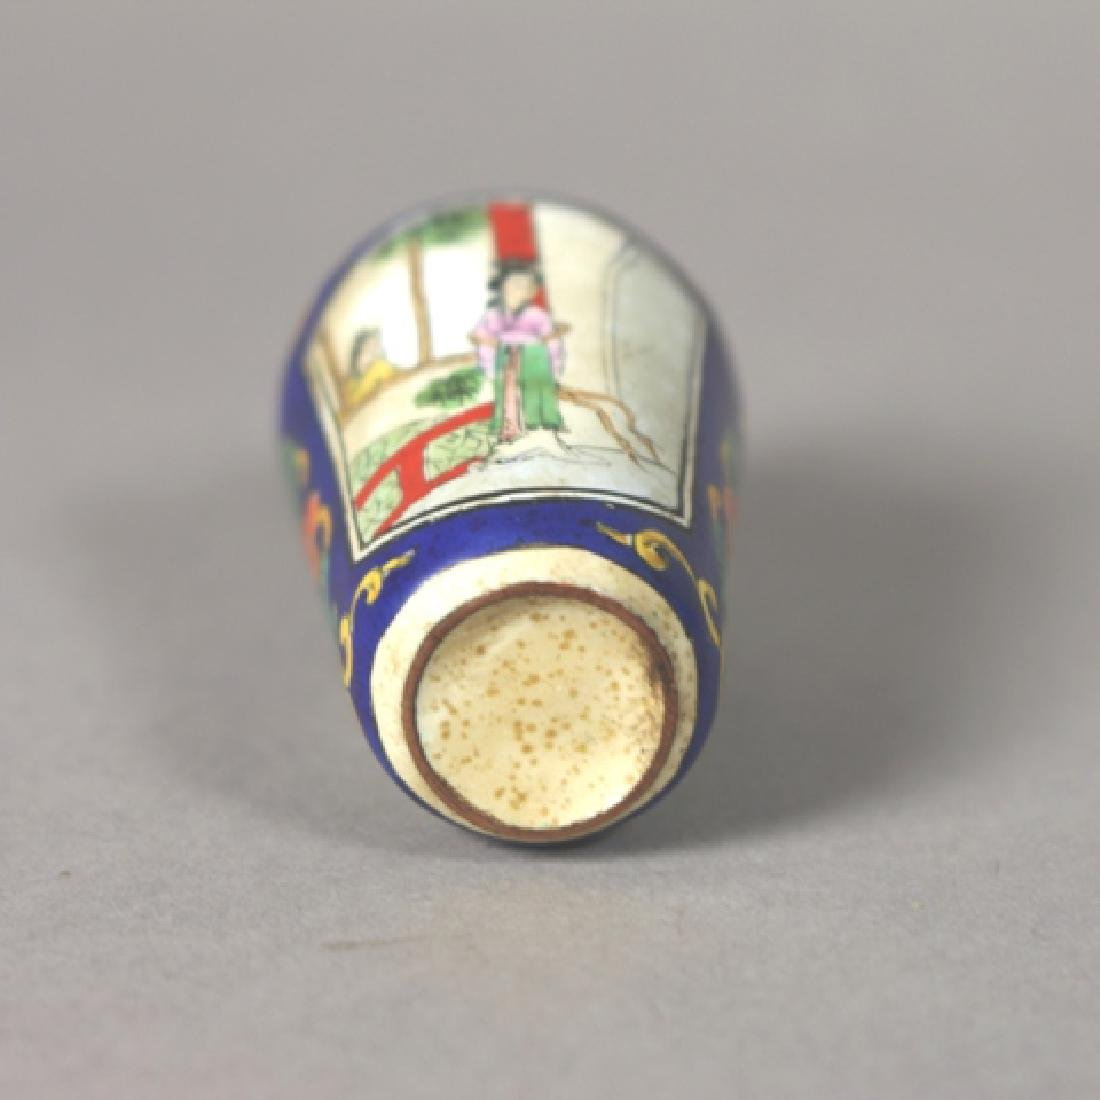 19th Century Chinese Enamel on Copper Snuff Bottle - 3